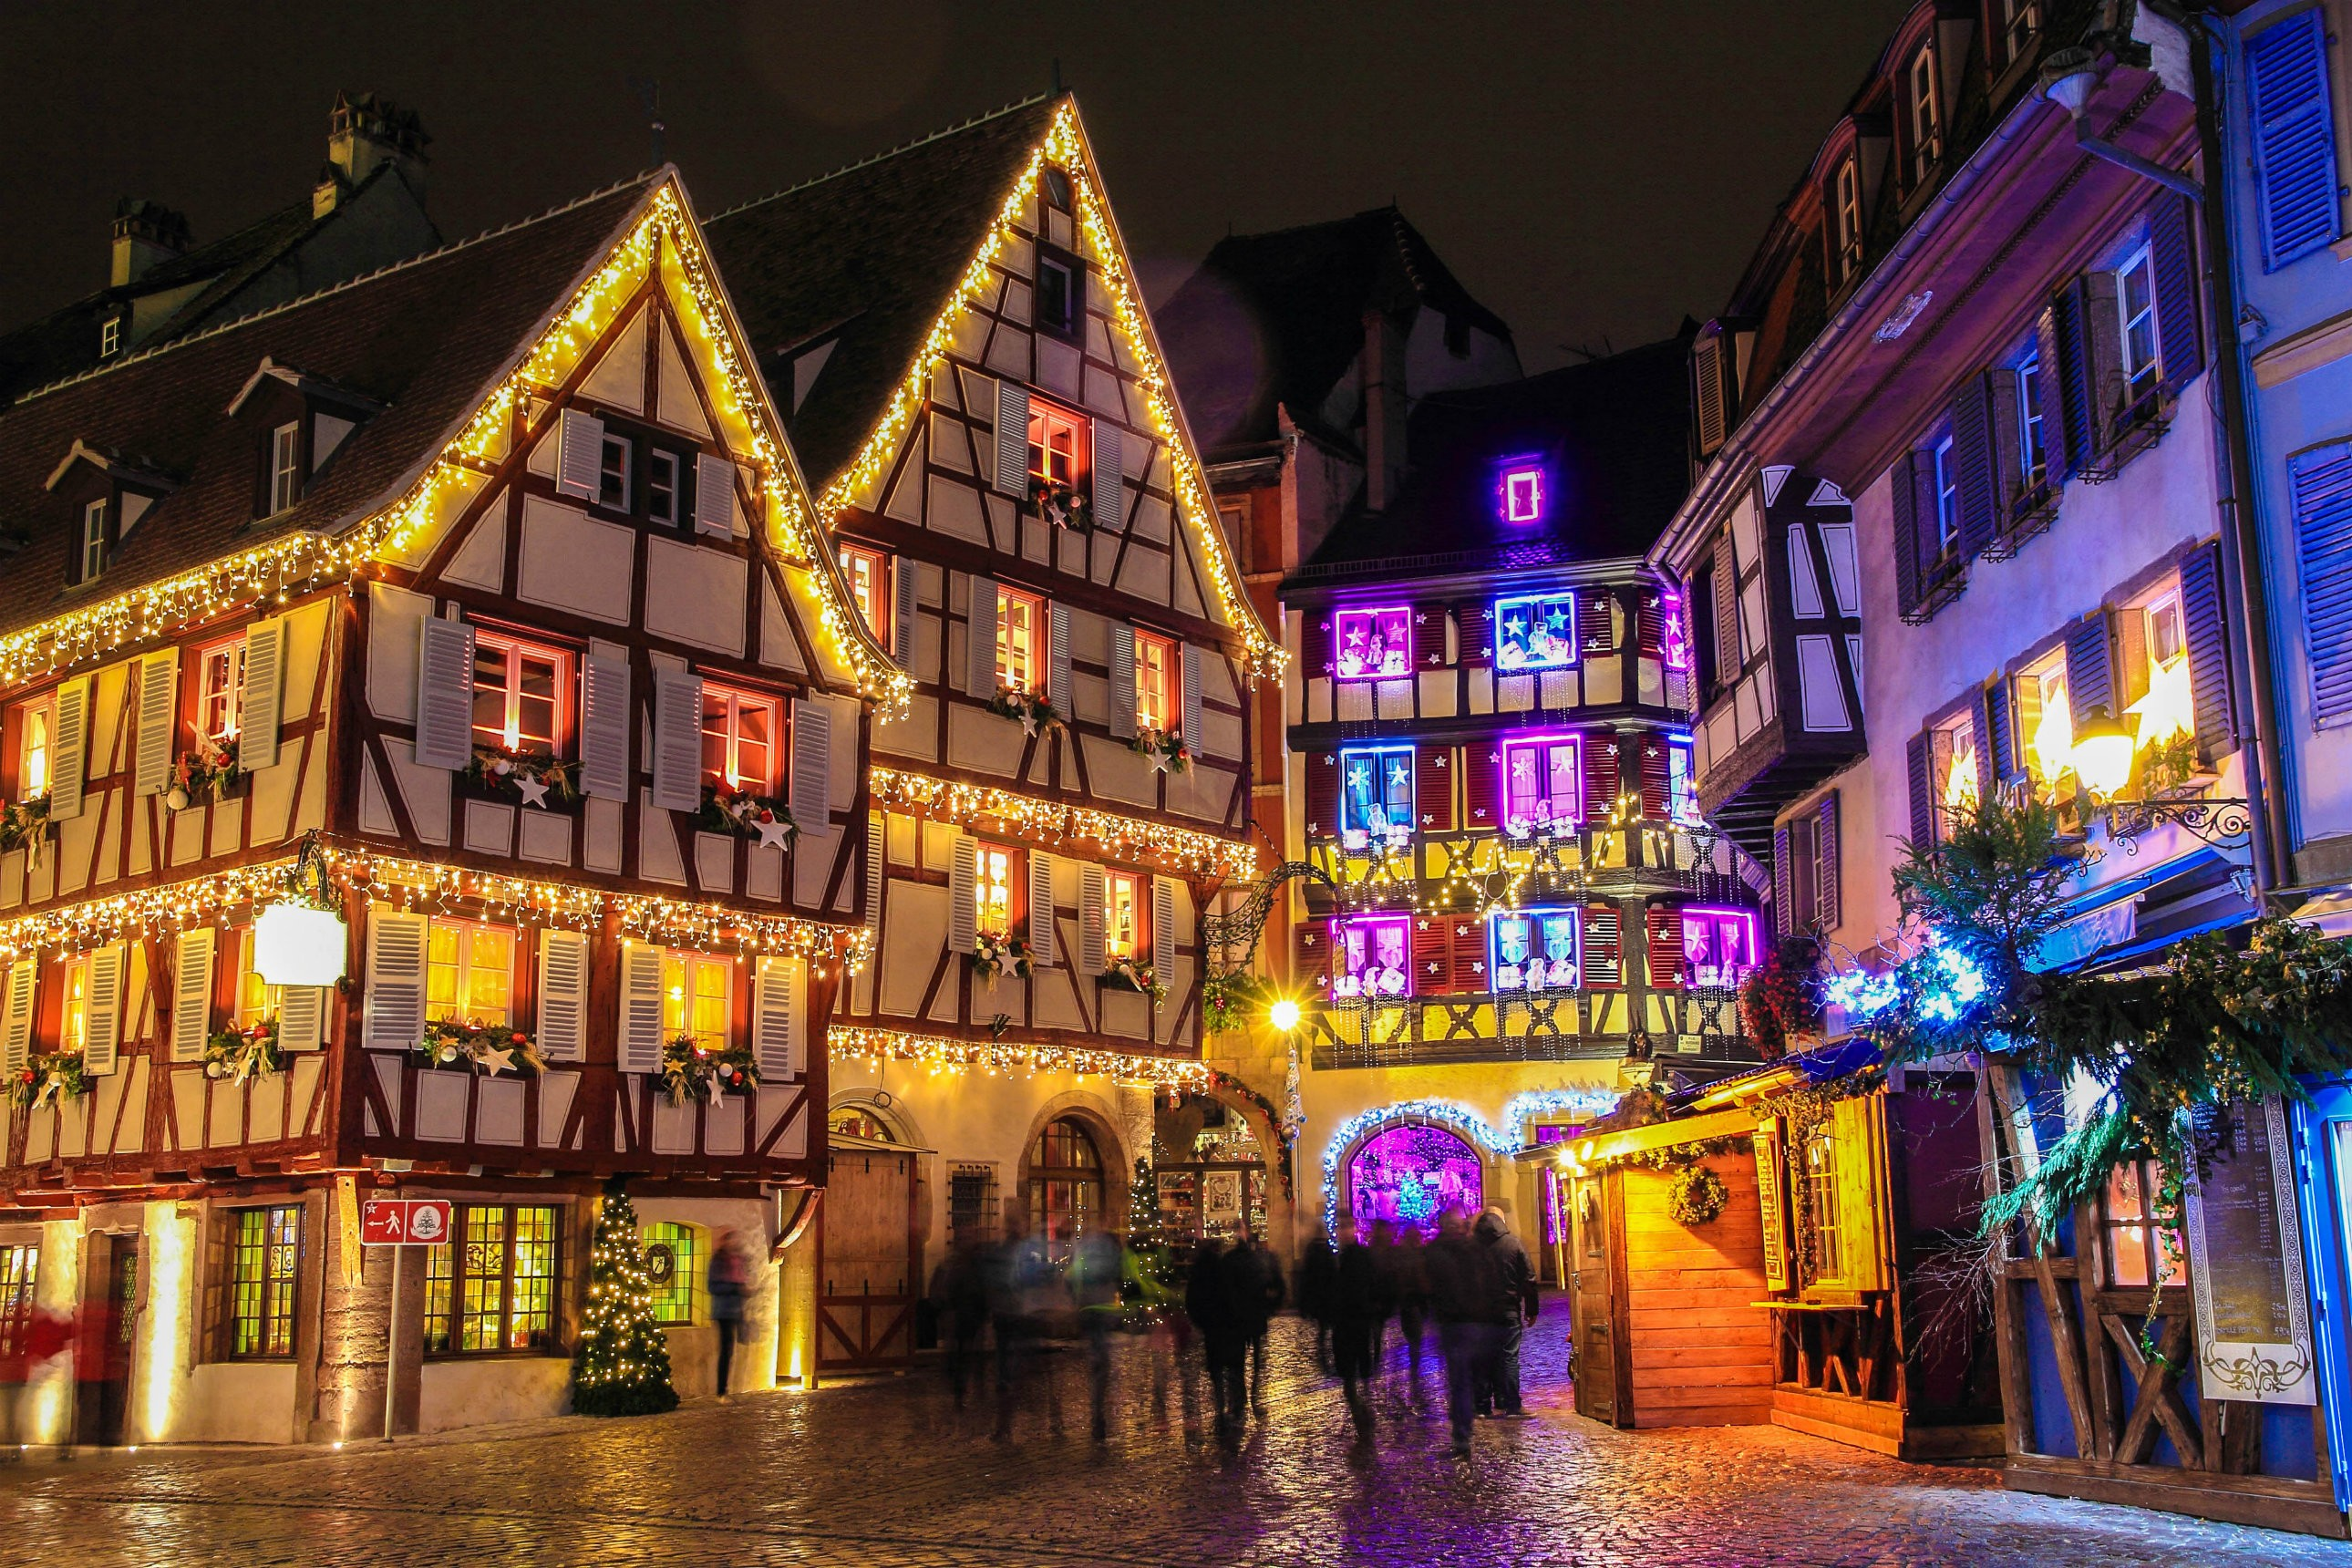 strasbourg france explore the holiday markets ladyhattan - France Christmas